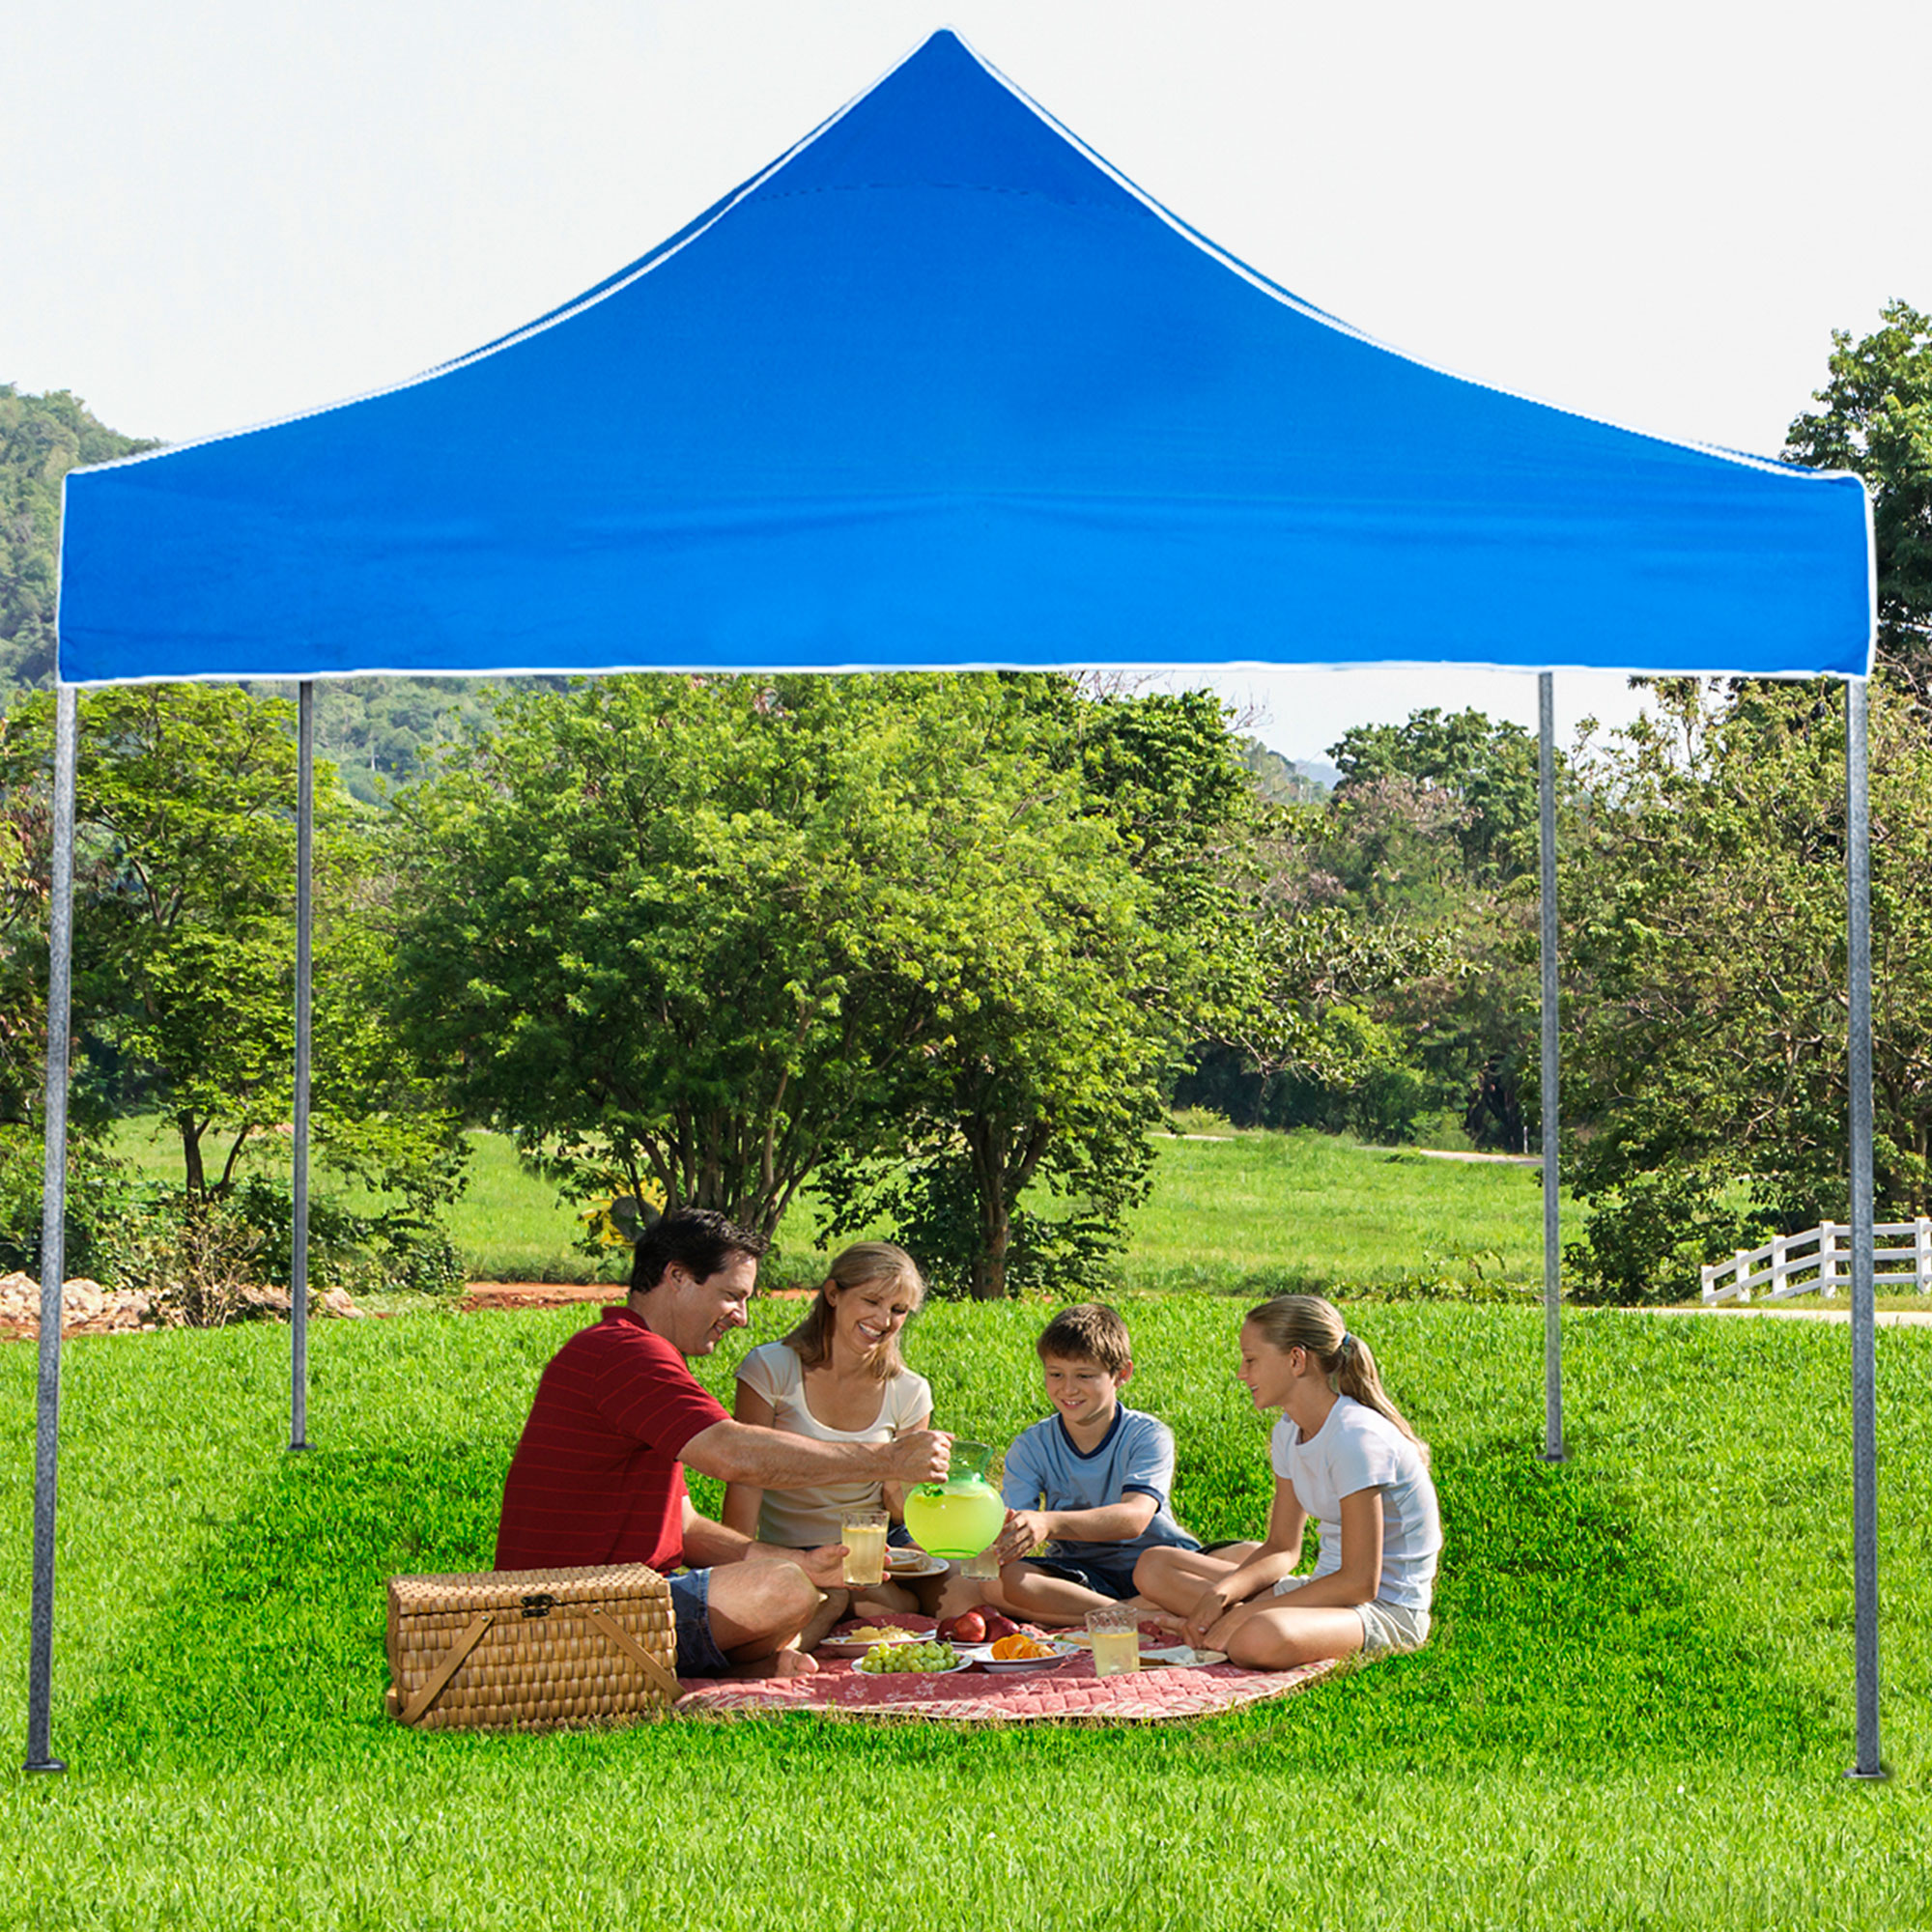 10' x 10' Pop-Up Instant Canopy Tent by Stalwart